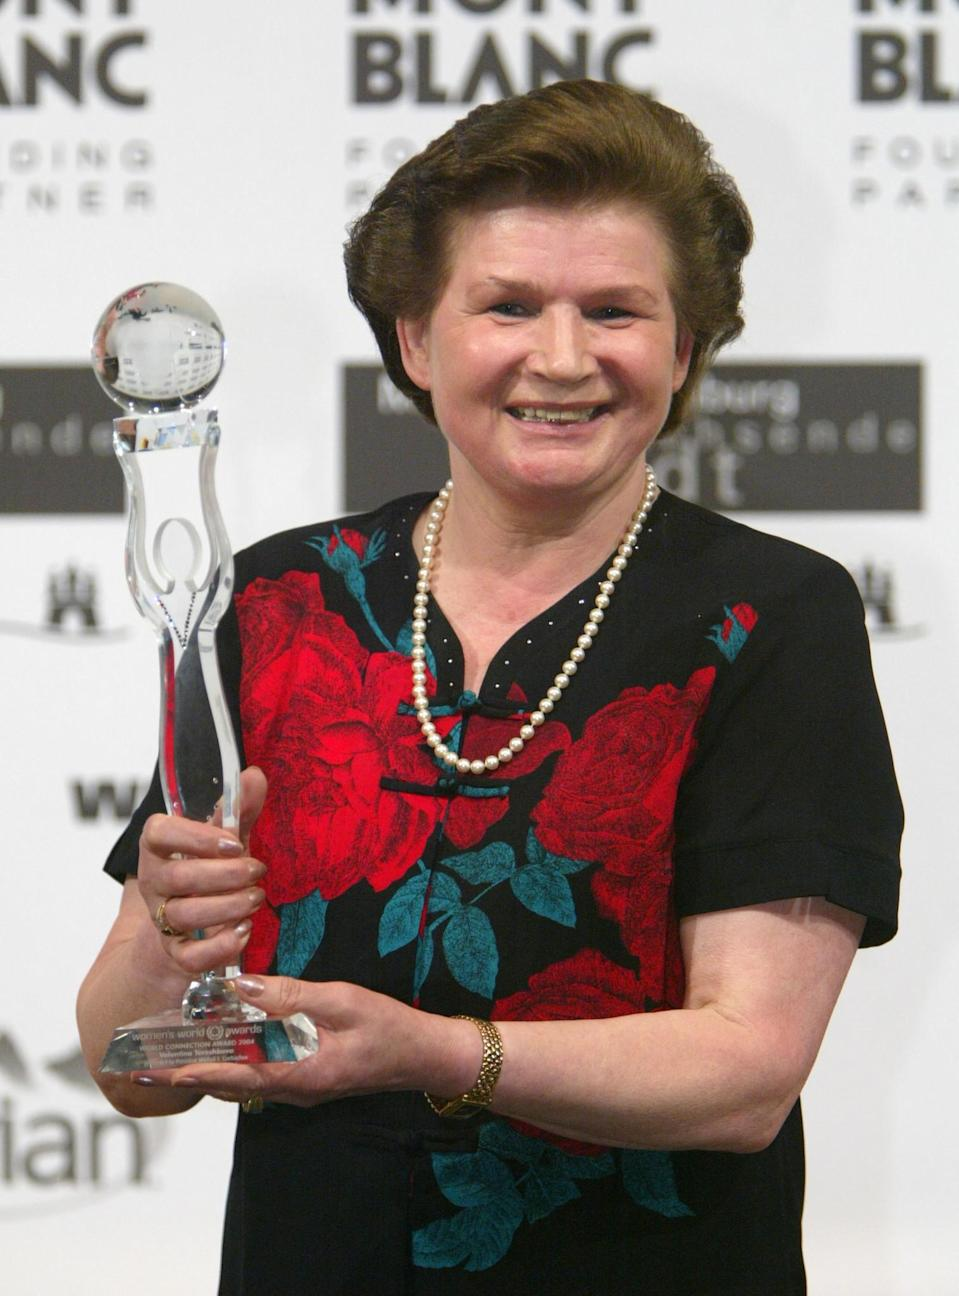 <p>In 1963, Russian astronaut Valentina Tereshkova became the first woman to travel into space. Her journey as an astronaut started when she learned to parachute in her spare time. This experience led to Valentina being picked for the Soviet space program in a space race between Russia and the US. The Soviets were determined to be the first to send a woman into space and so they were. After her space endeavours, Valentina became a prominent member of the Communist party, heading up the Soviet Committee for Women. Now 79, she has since said she'd love to travel to Mars if given the opportunity. <i>[Photo: Getty]</i> </p>